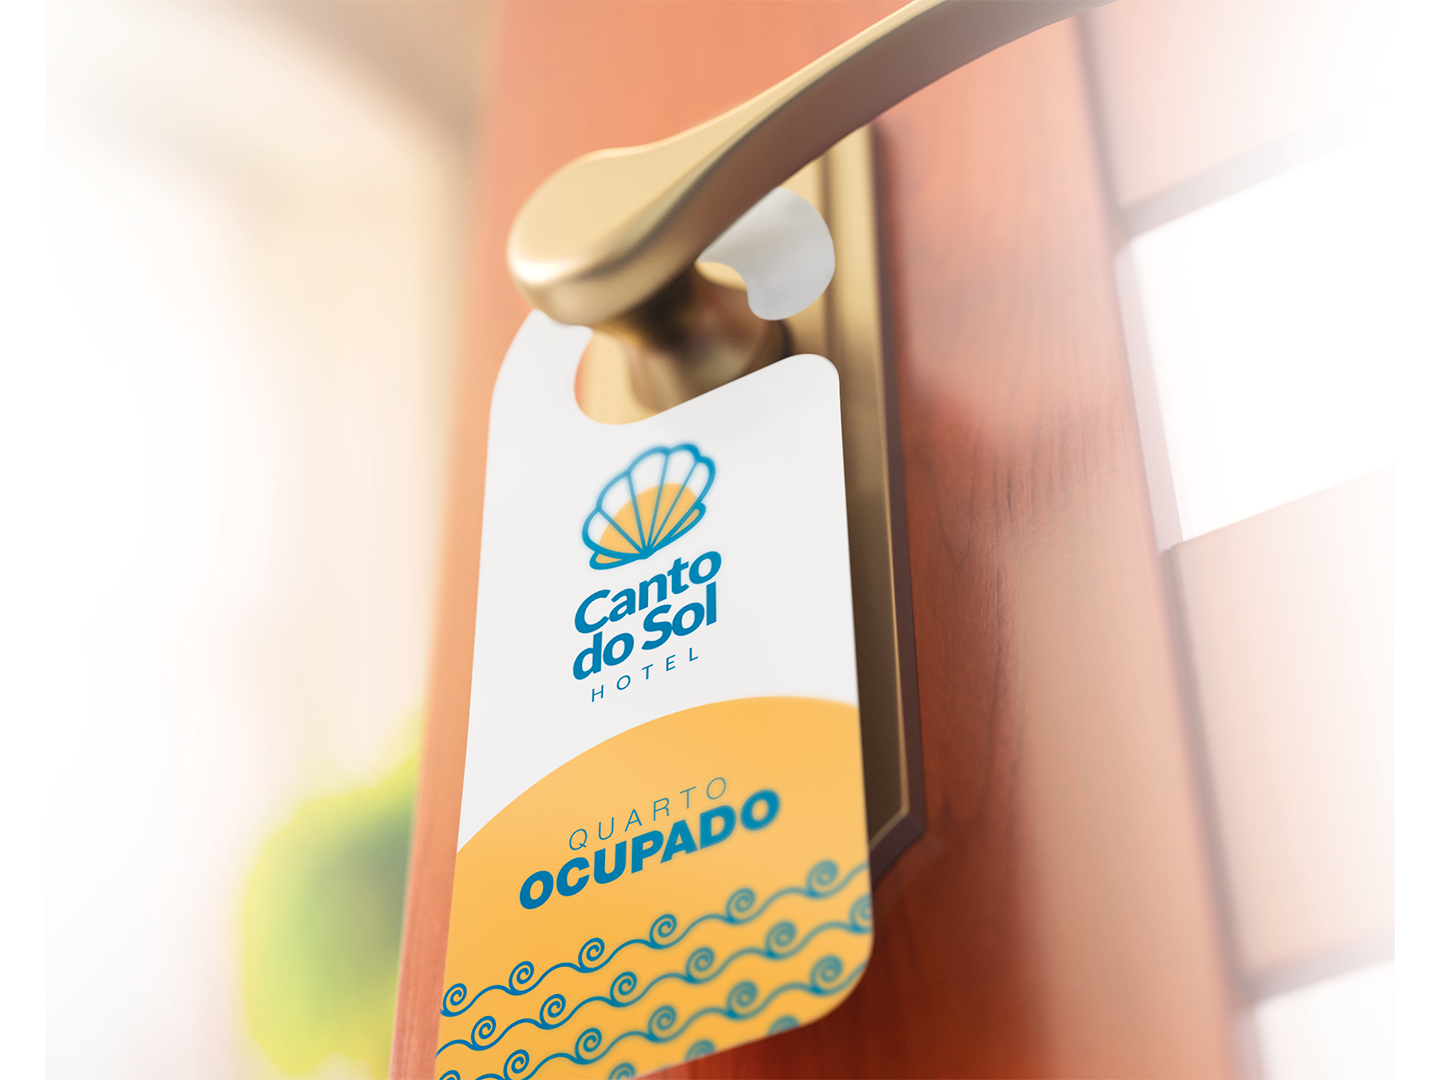 Canto do Sol - Logo Design sea shell sun beach praia hotel logo hotel modern logo design clean branding